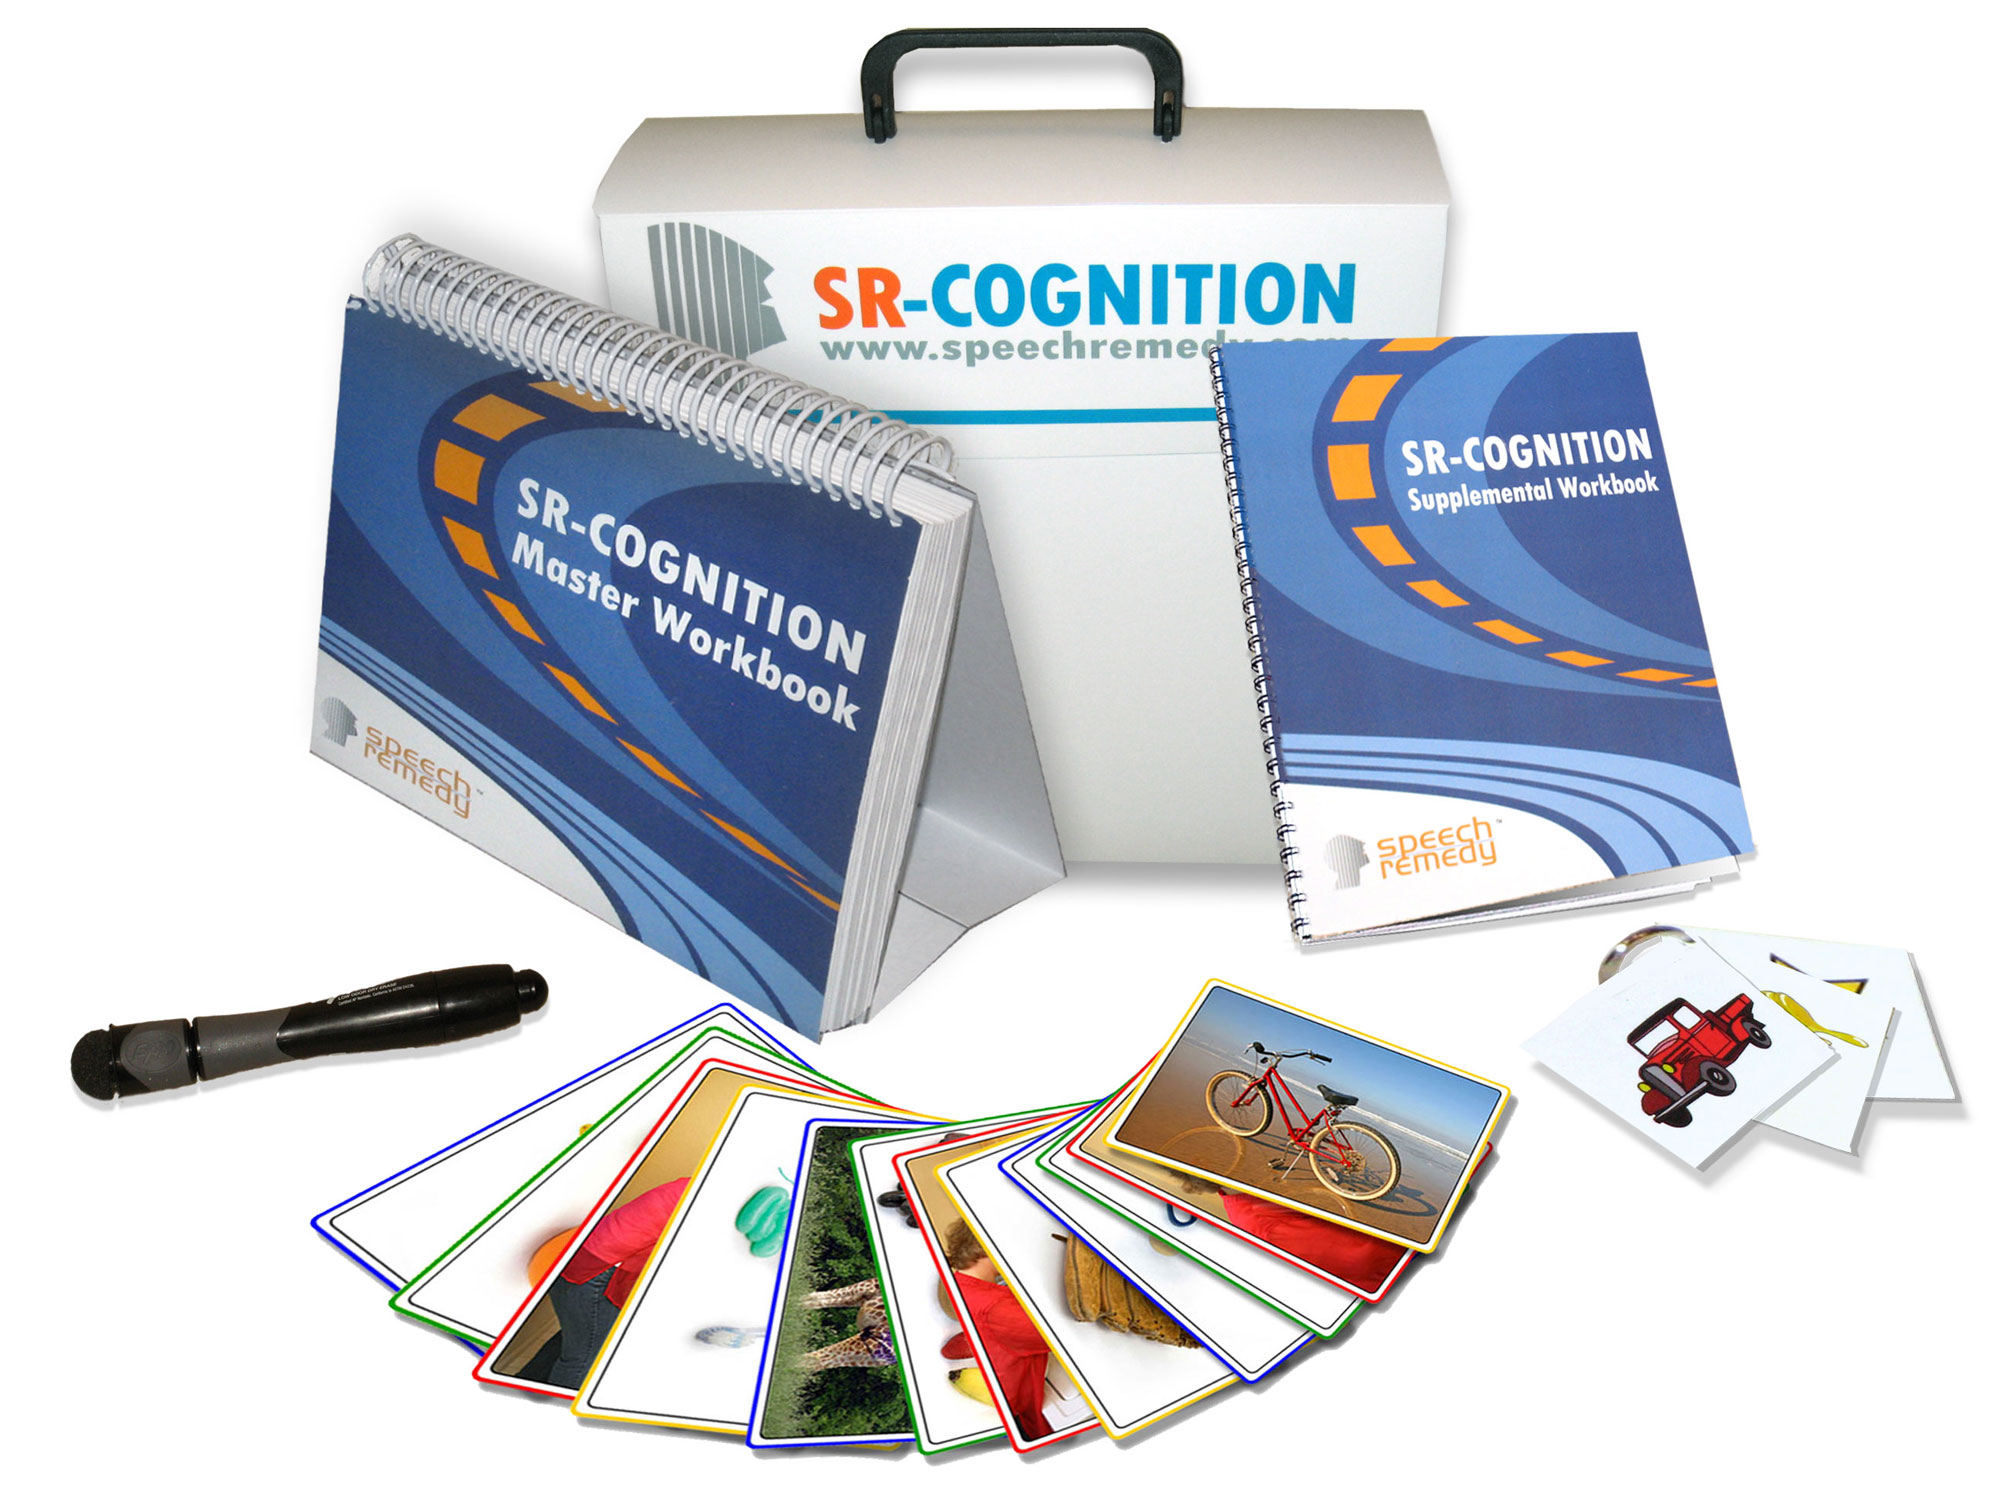 SR-Cognition is a complete therapeutic tool-set targeting adult cognitive ...